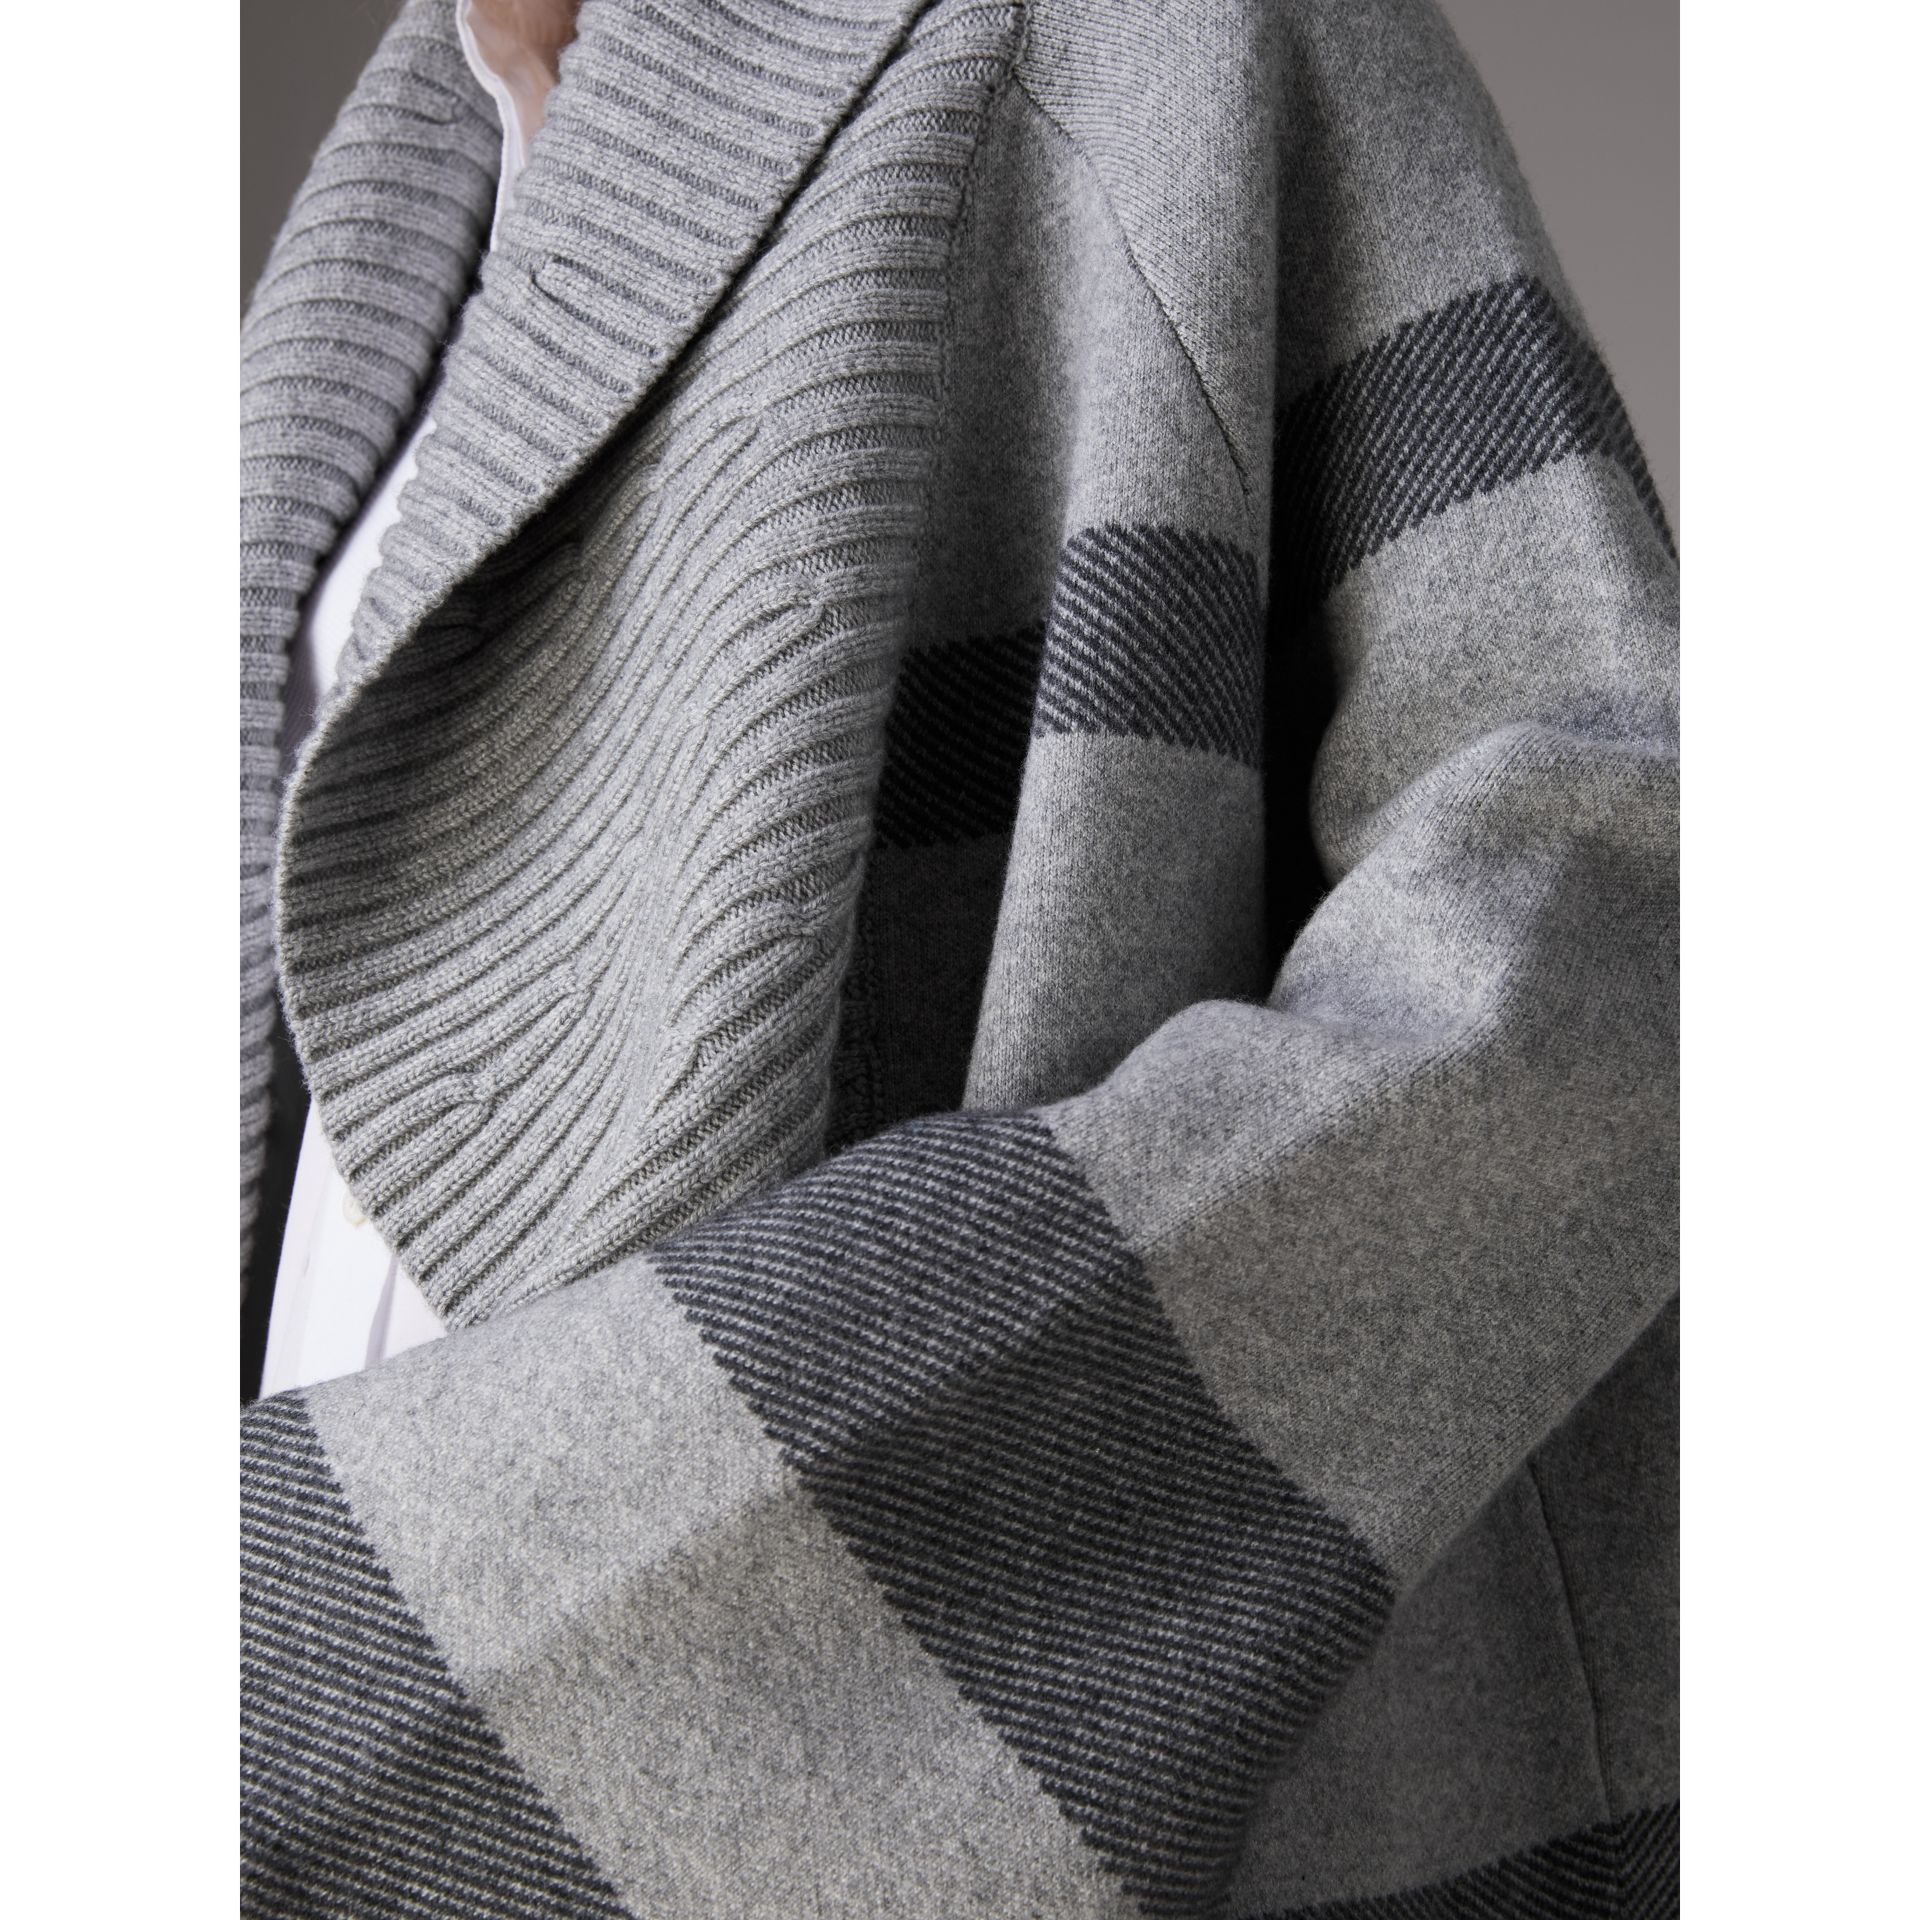 Check Wool Cashmere Blend Cardigan Coat in Pale Grey Melange - Women | Burberry Australia - gallery image 1